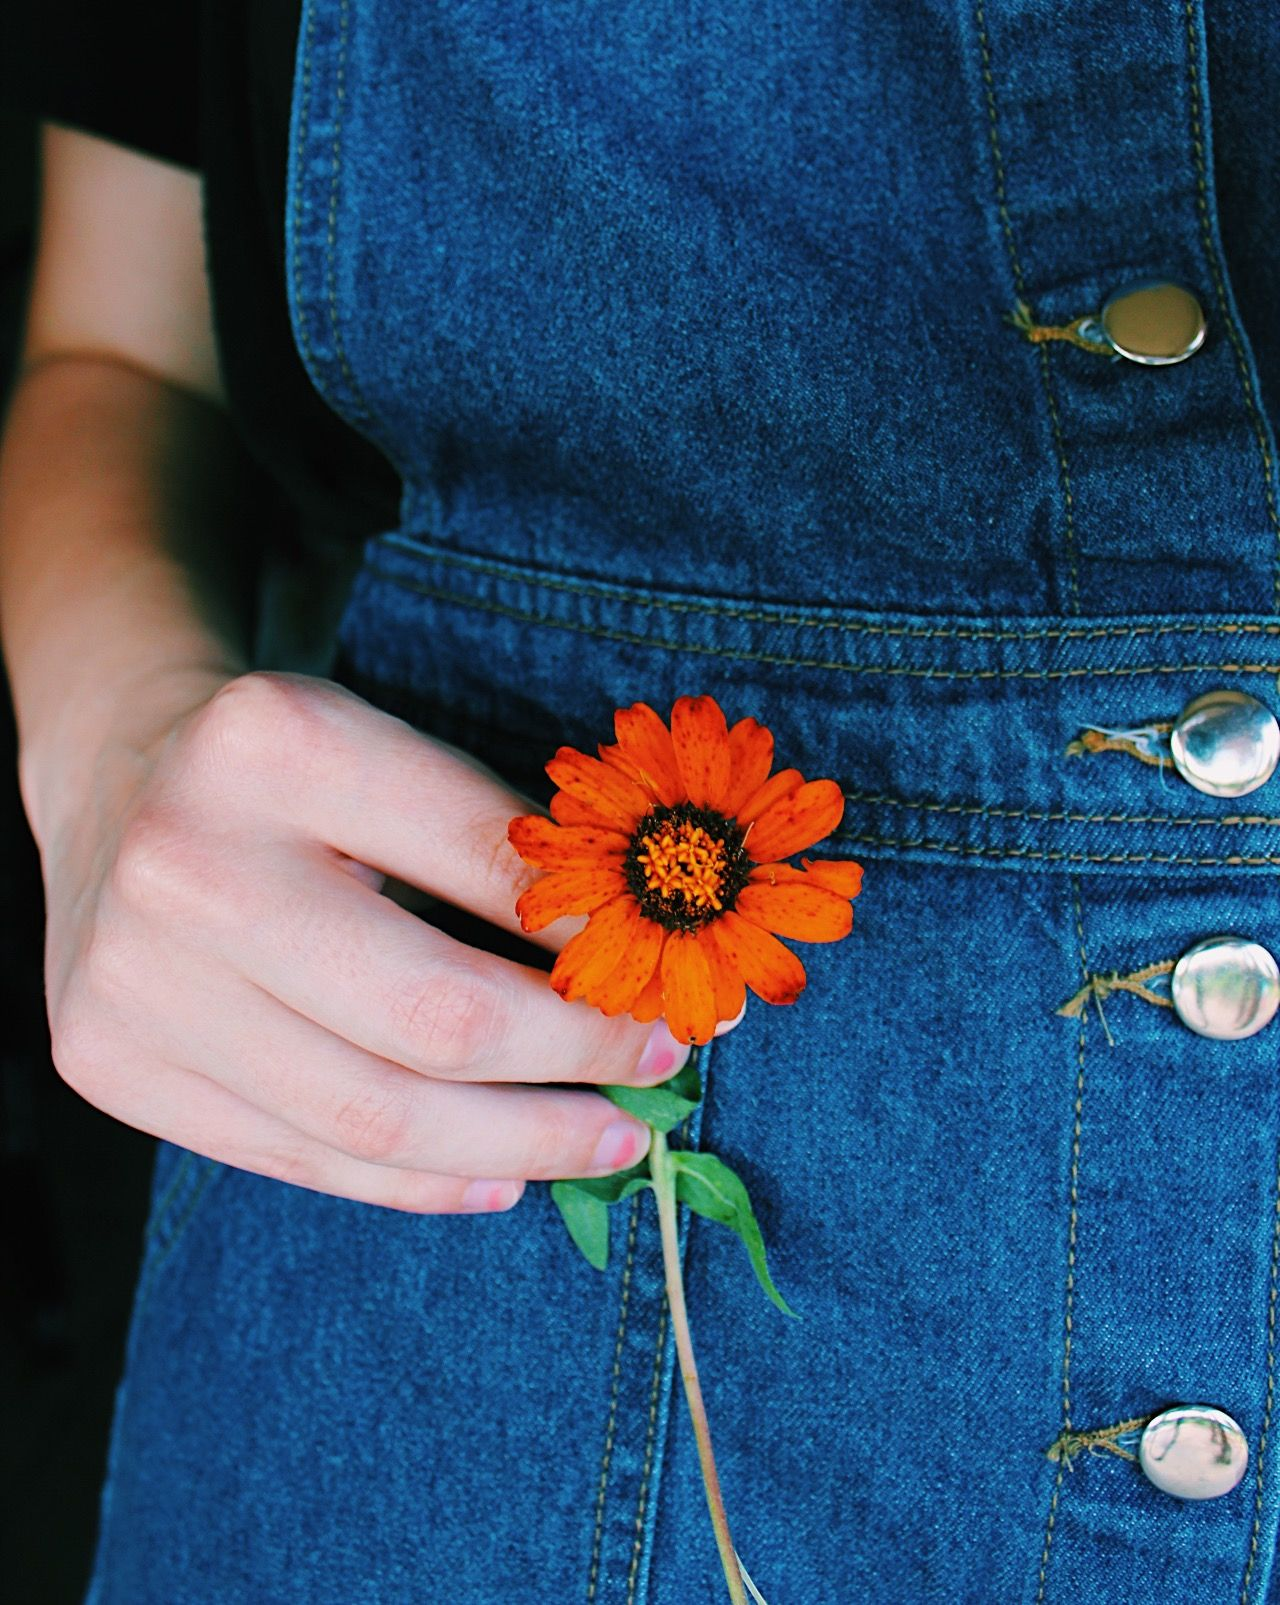 Pin By Blaire Haley On Photo Inspo Art Hoe Aesthetic Flower Aesthetic Hand Photography